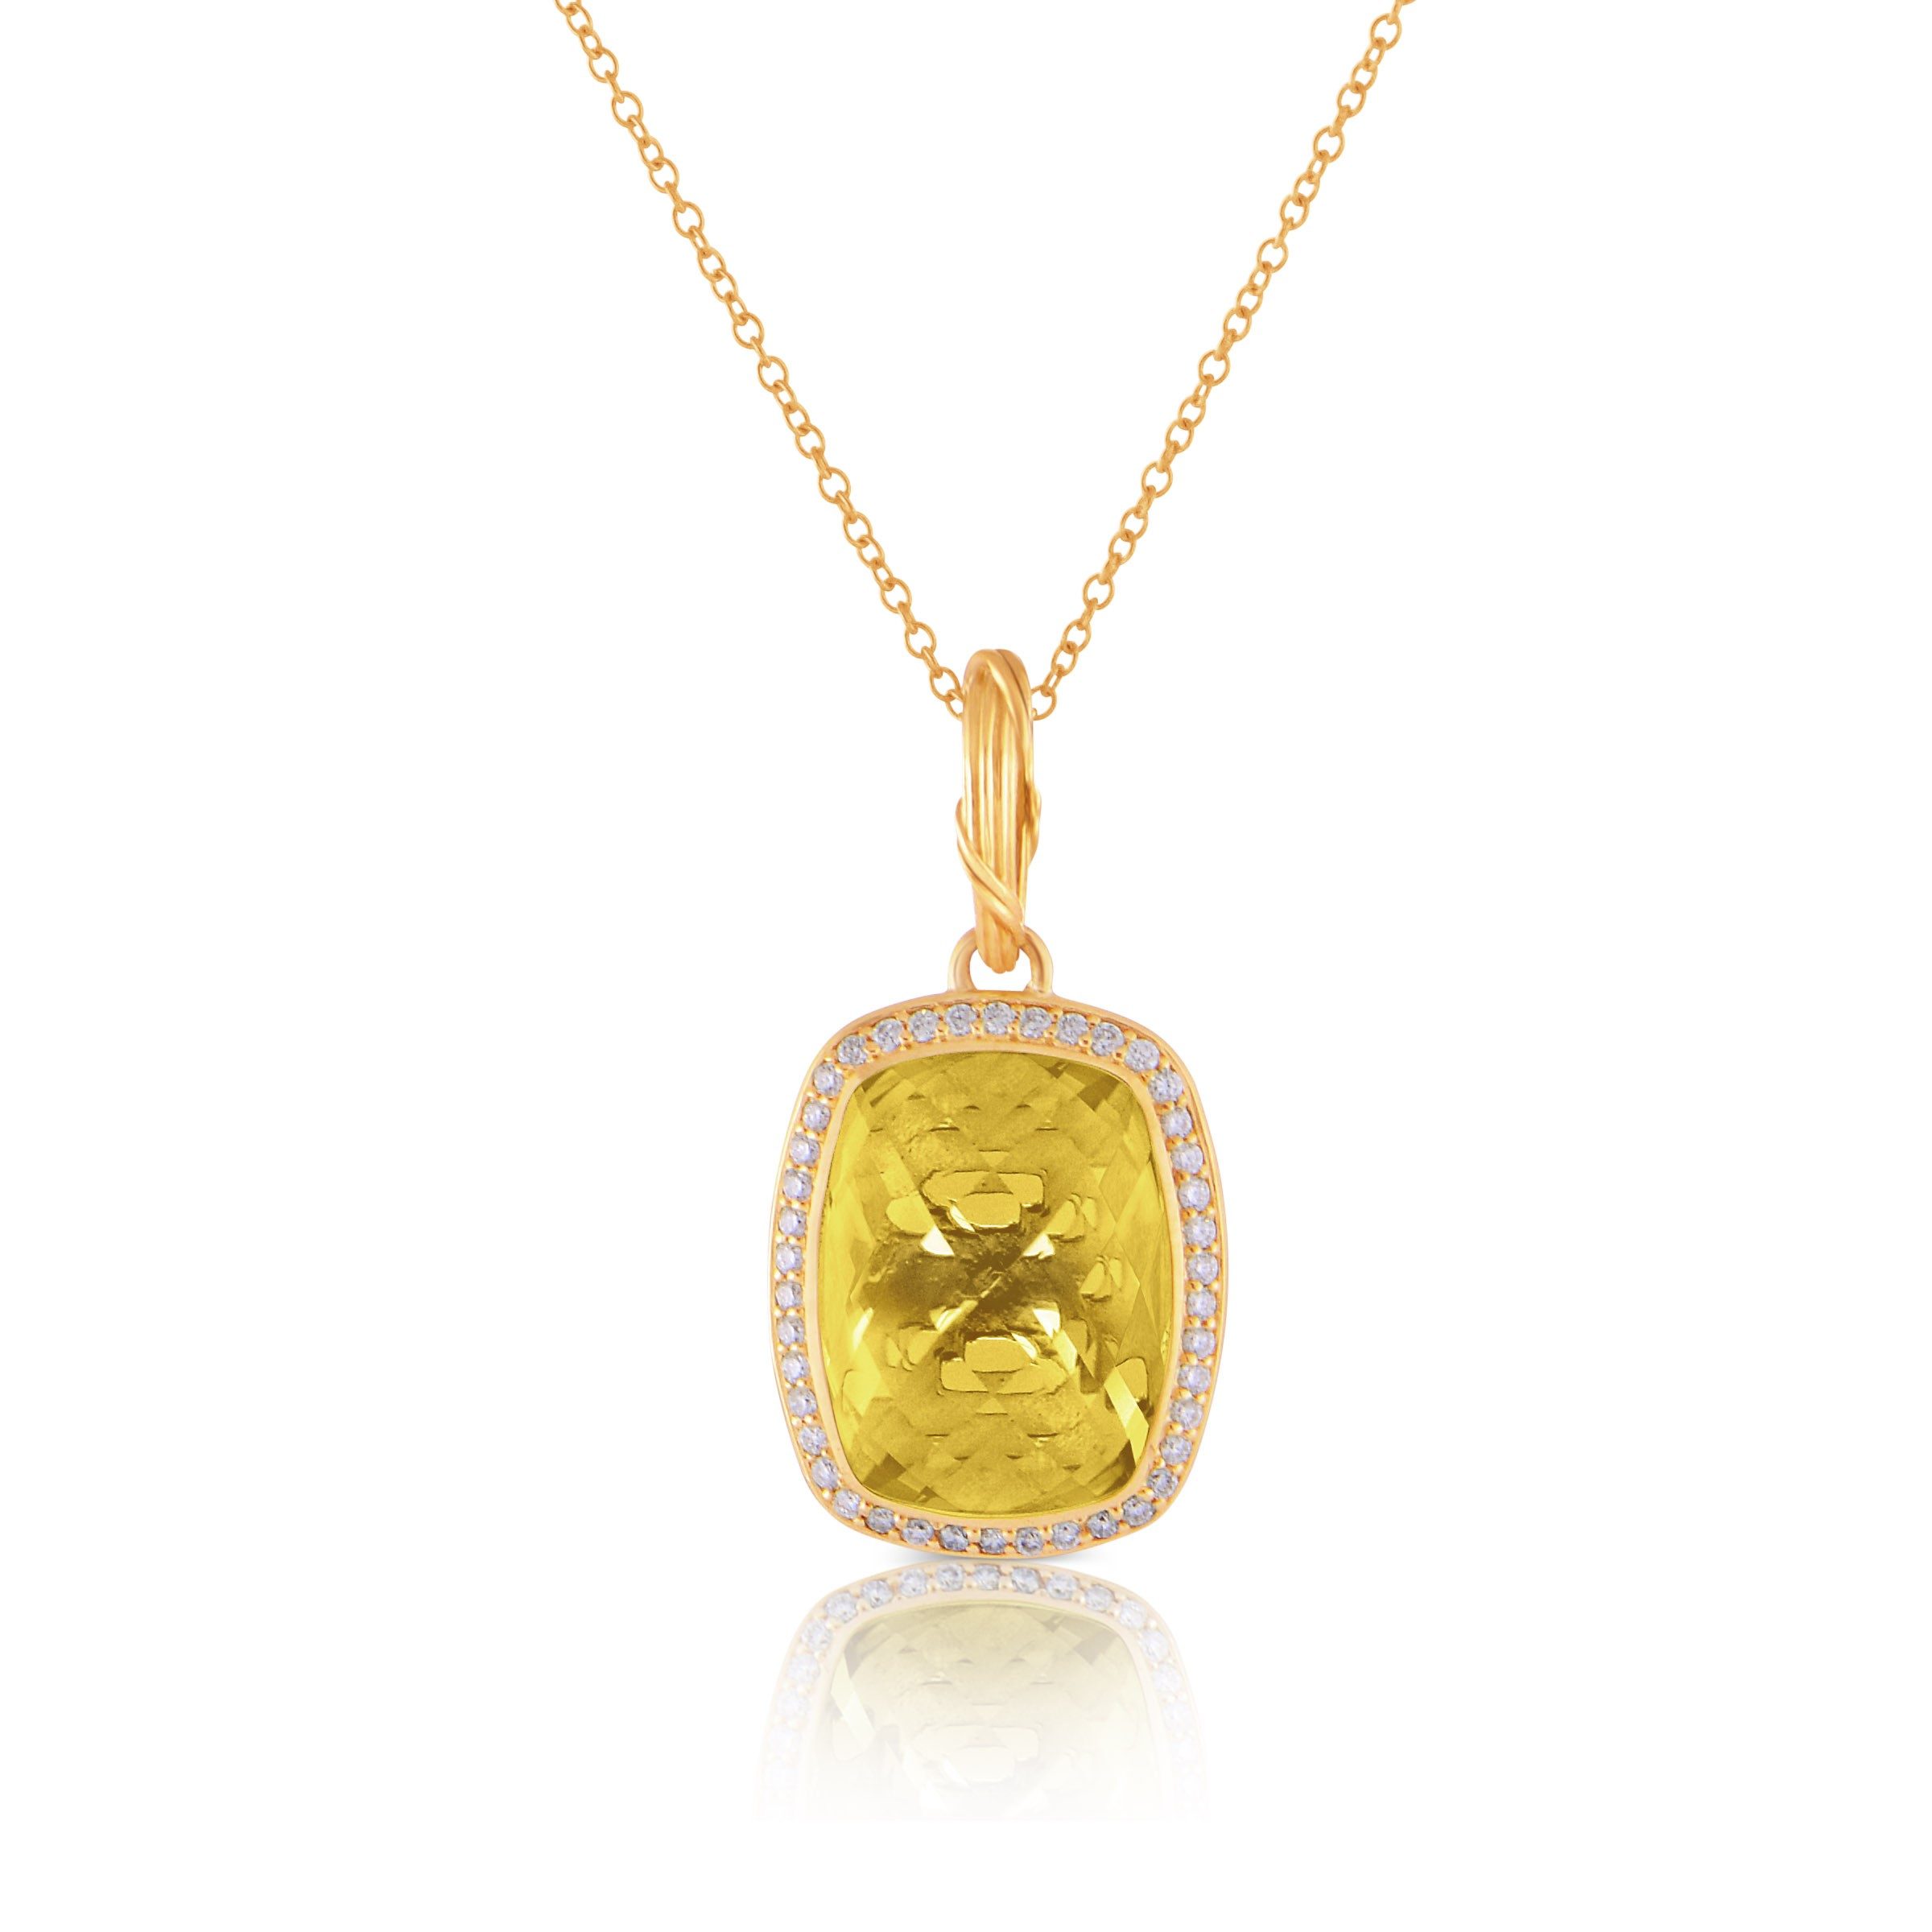 and silver pendant solitaire citrine carat ushapependant necklace chain braziliancitrine under jewellery brazilian lugaro